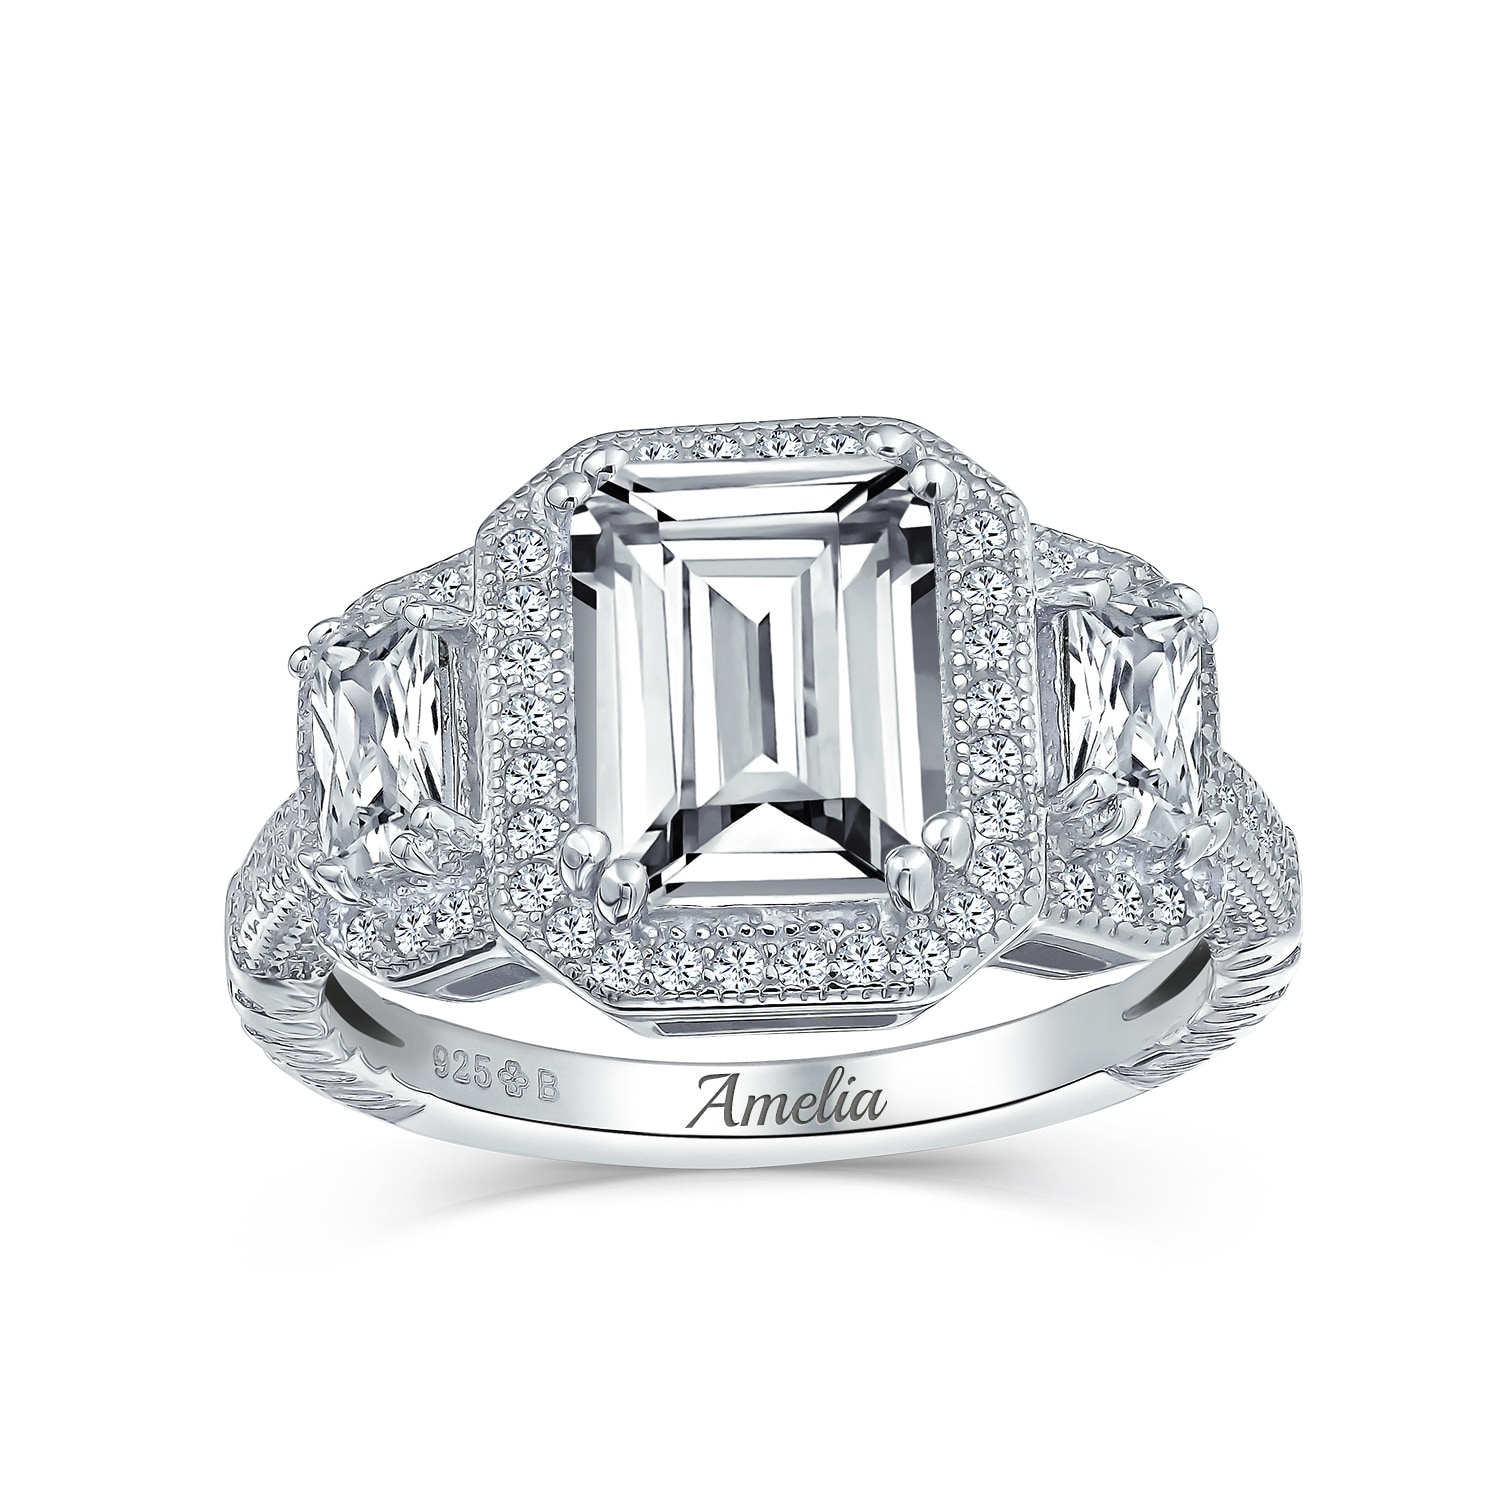 3ct Halo 3 Stone Emerald Cut Cz Engagement Ring Cz 925 Sterling Silver Overstock 17989578